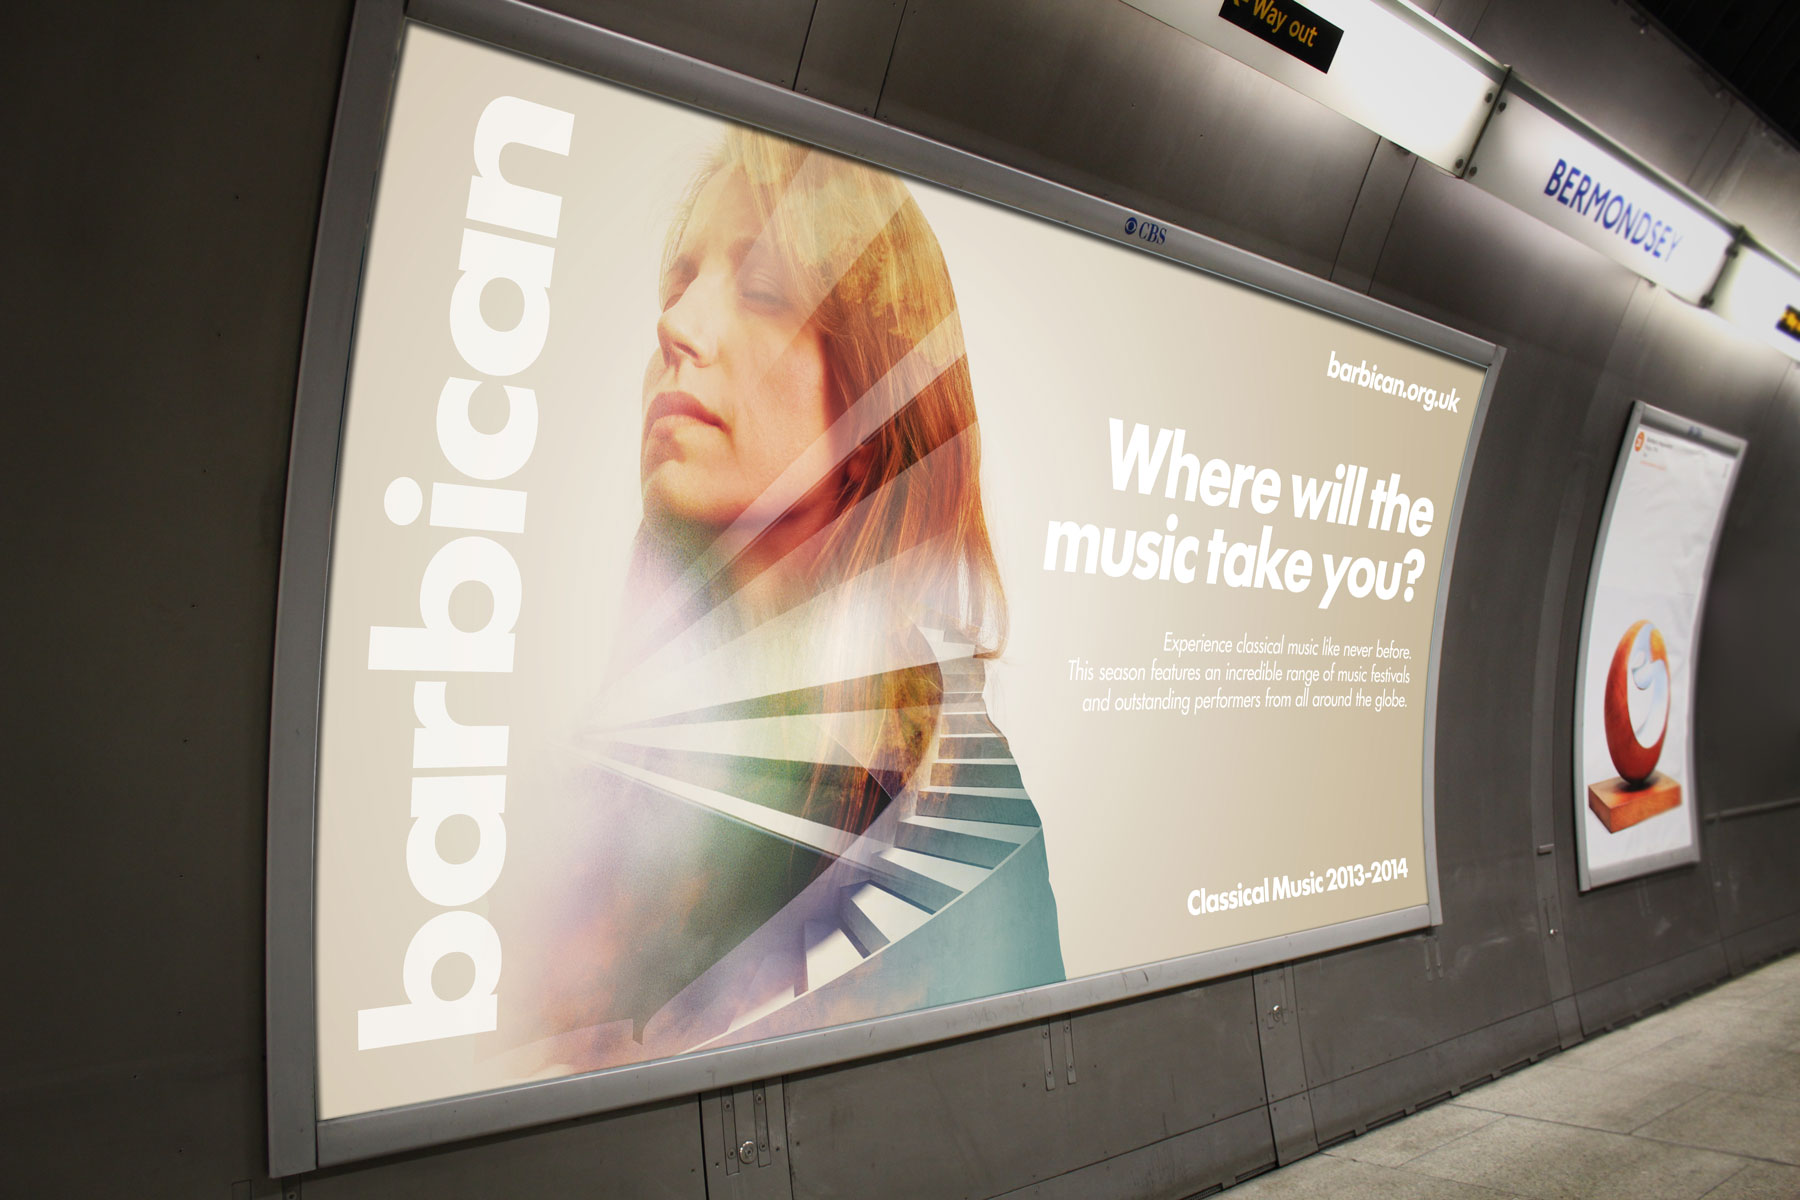 The campaign has run for four weeks with 255 posters across 129 London Underground stations.